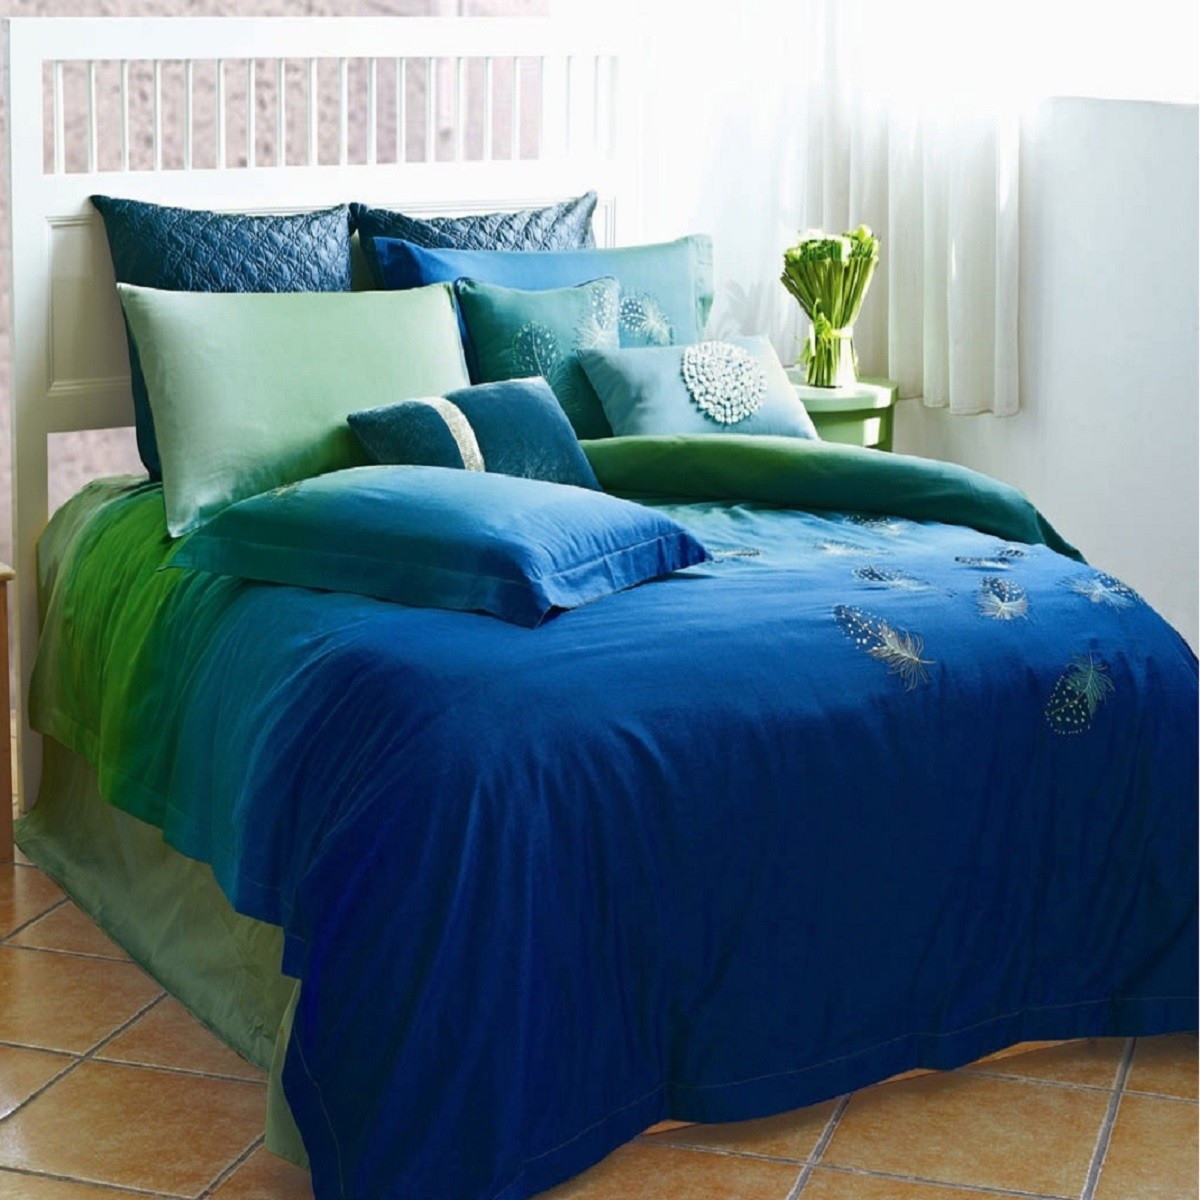 Peacock Blue Sheet Set | Peacock Bedding | Peacock Alley Bedding Reviews